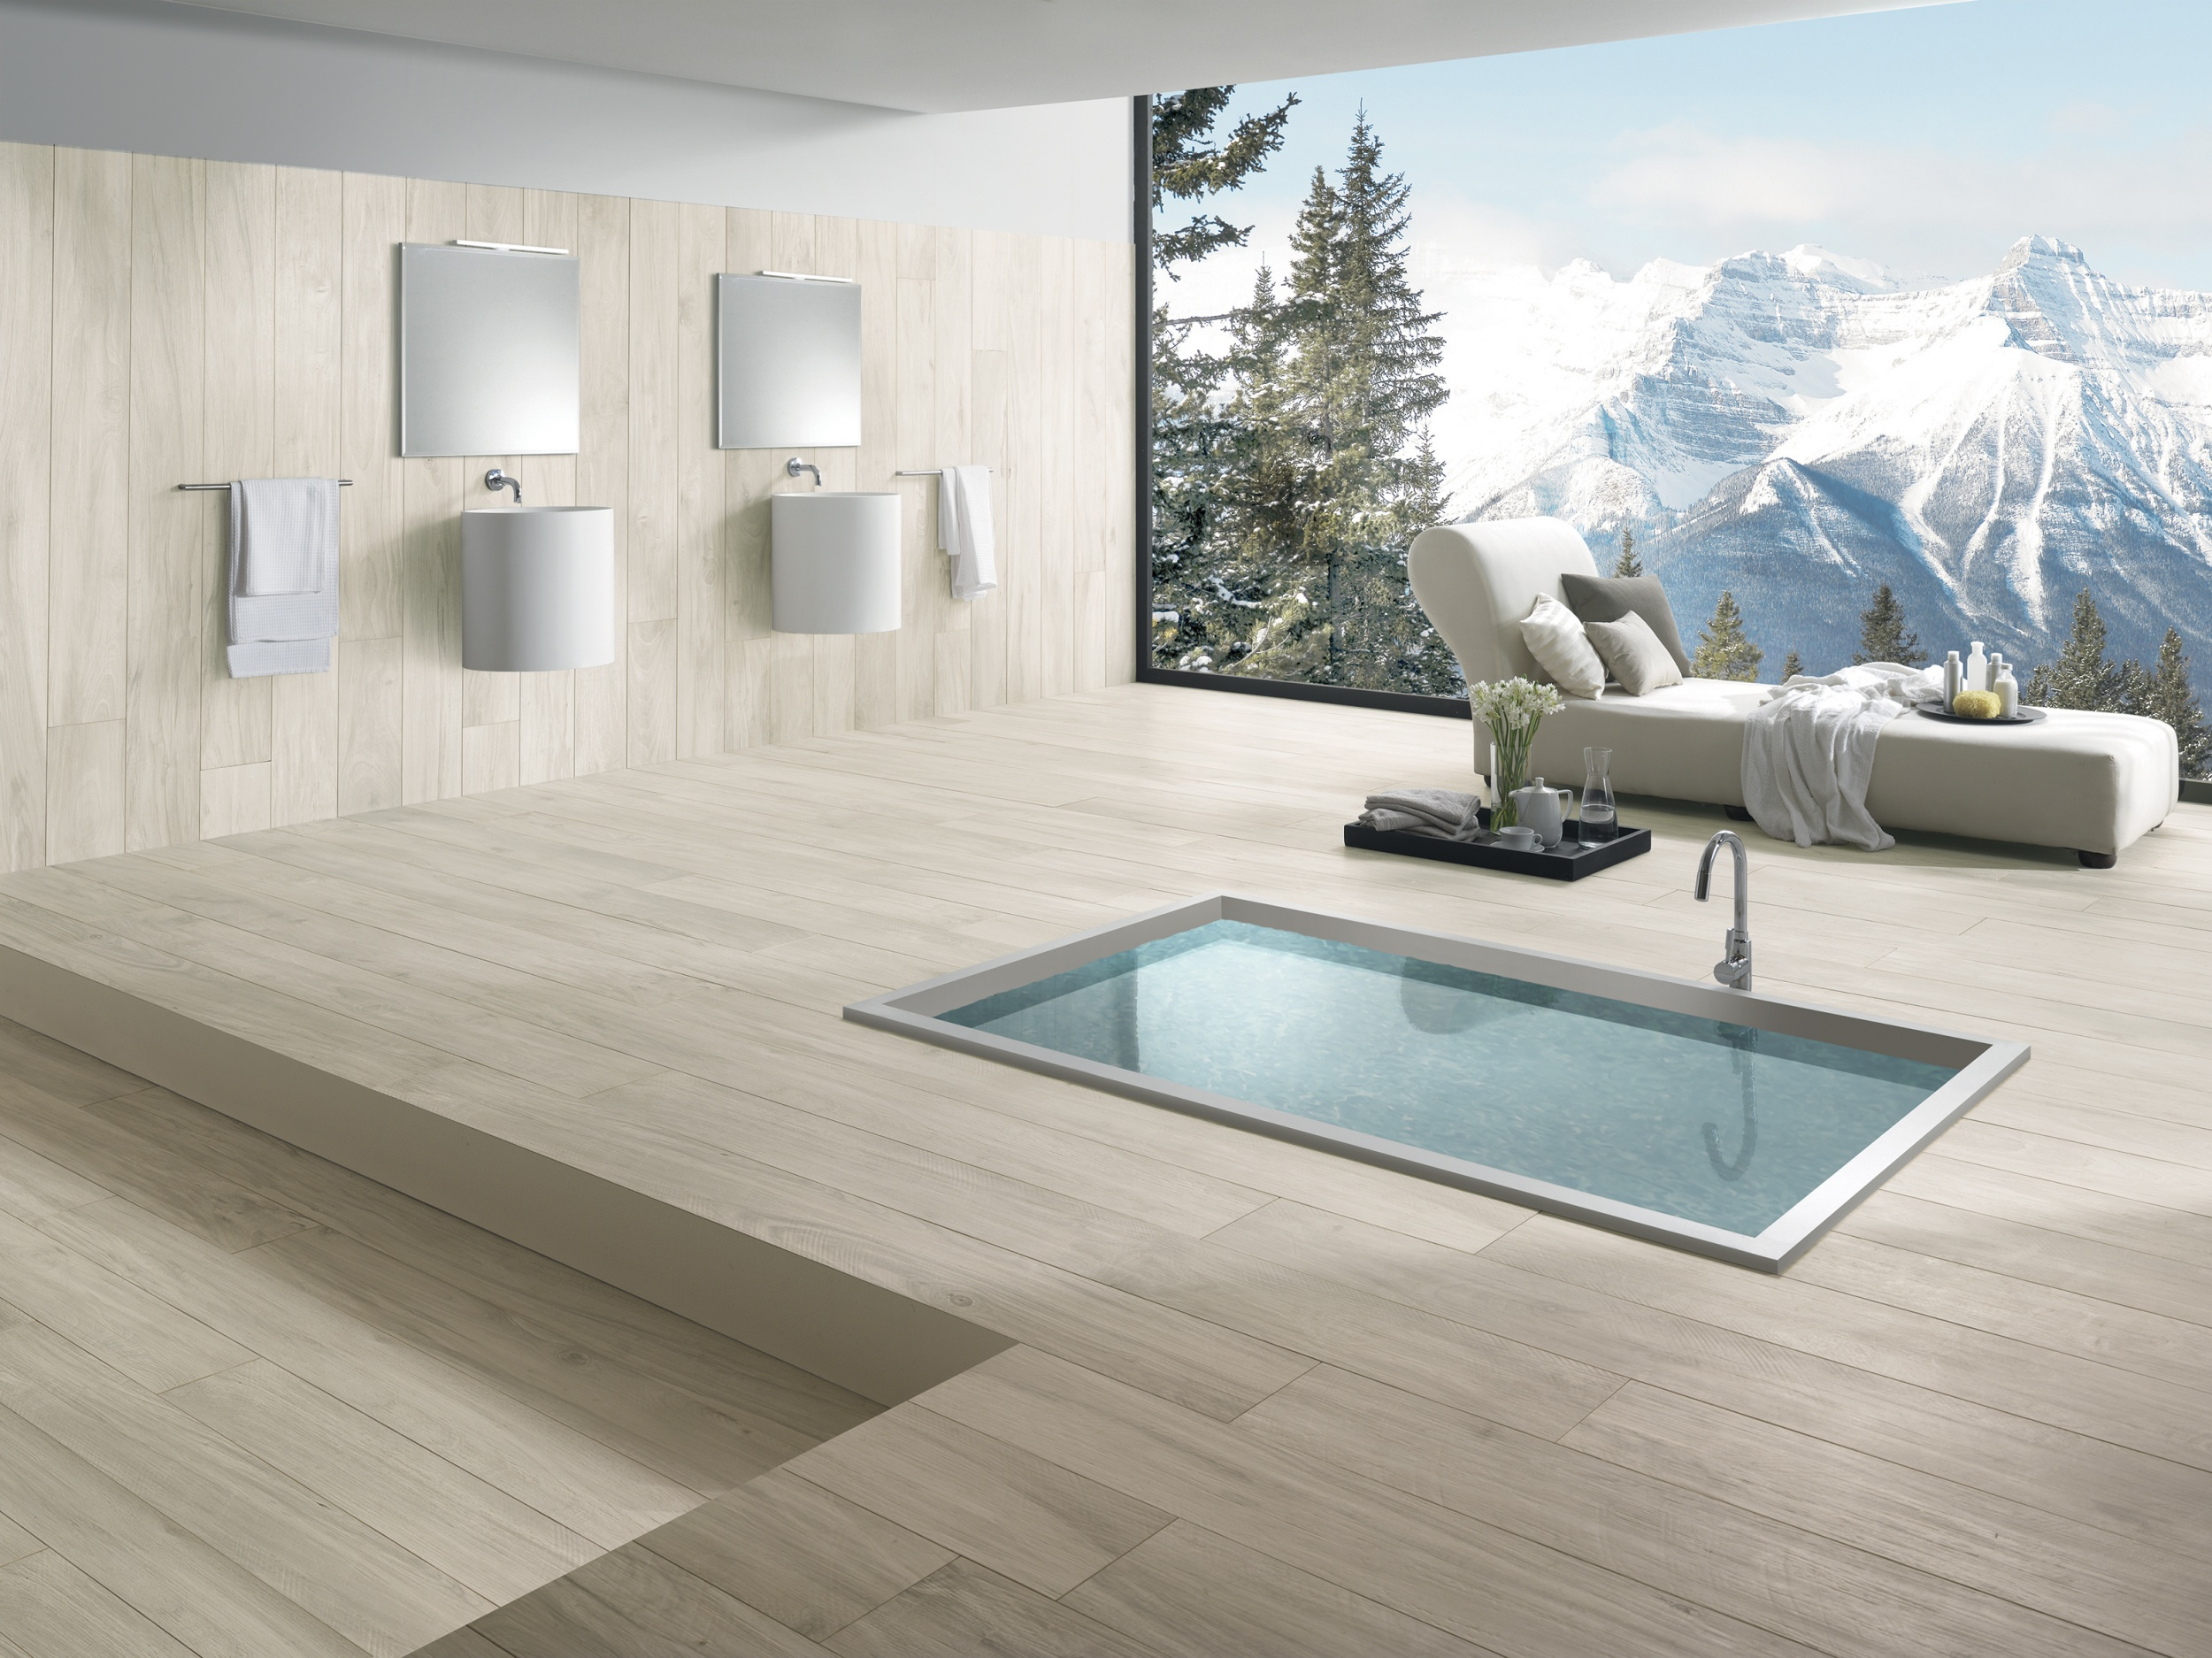 porcelain tile images: Essenza range high quality photo